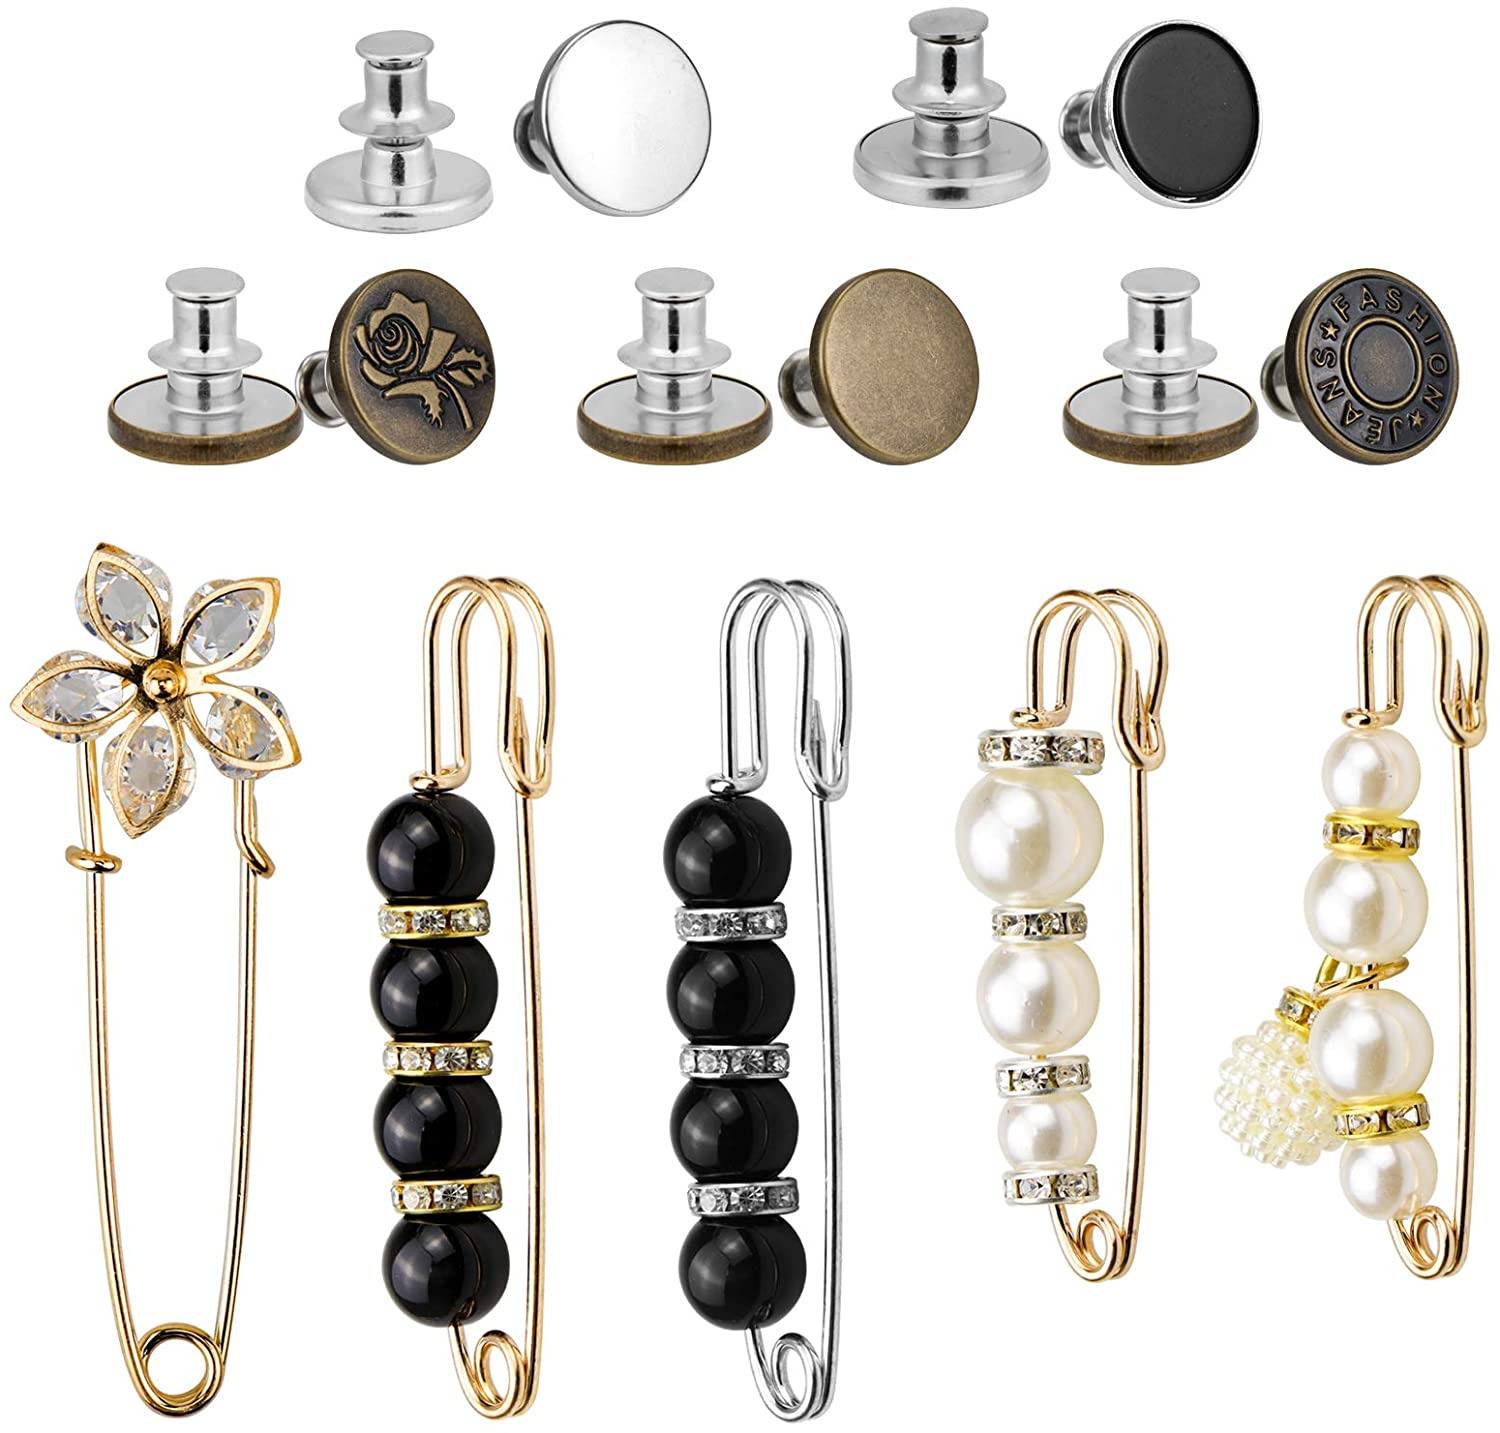 Yotako 10 PCS Adjustable Waist Brooch Pins Sweater Shawl Clips Pearl Safety Pin and No Sew Replacement Jeans Buttons Waist Buckles Perfect Fit Instant Button